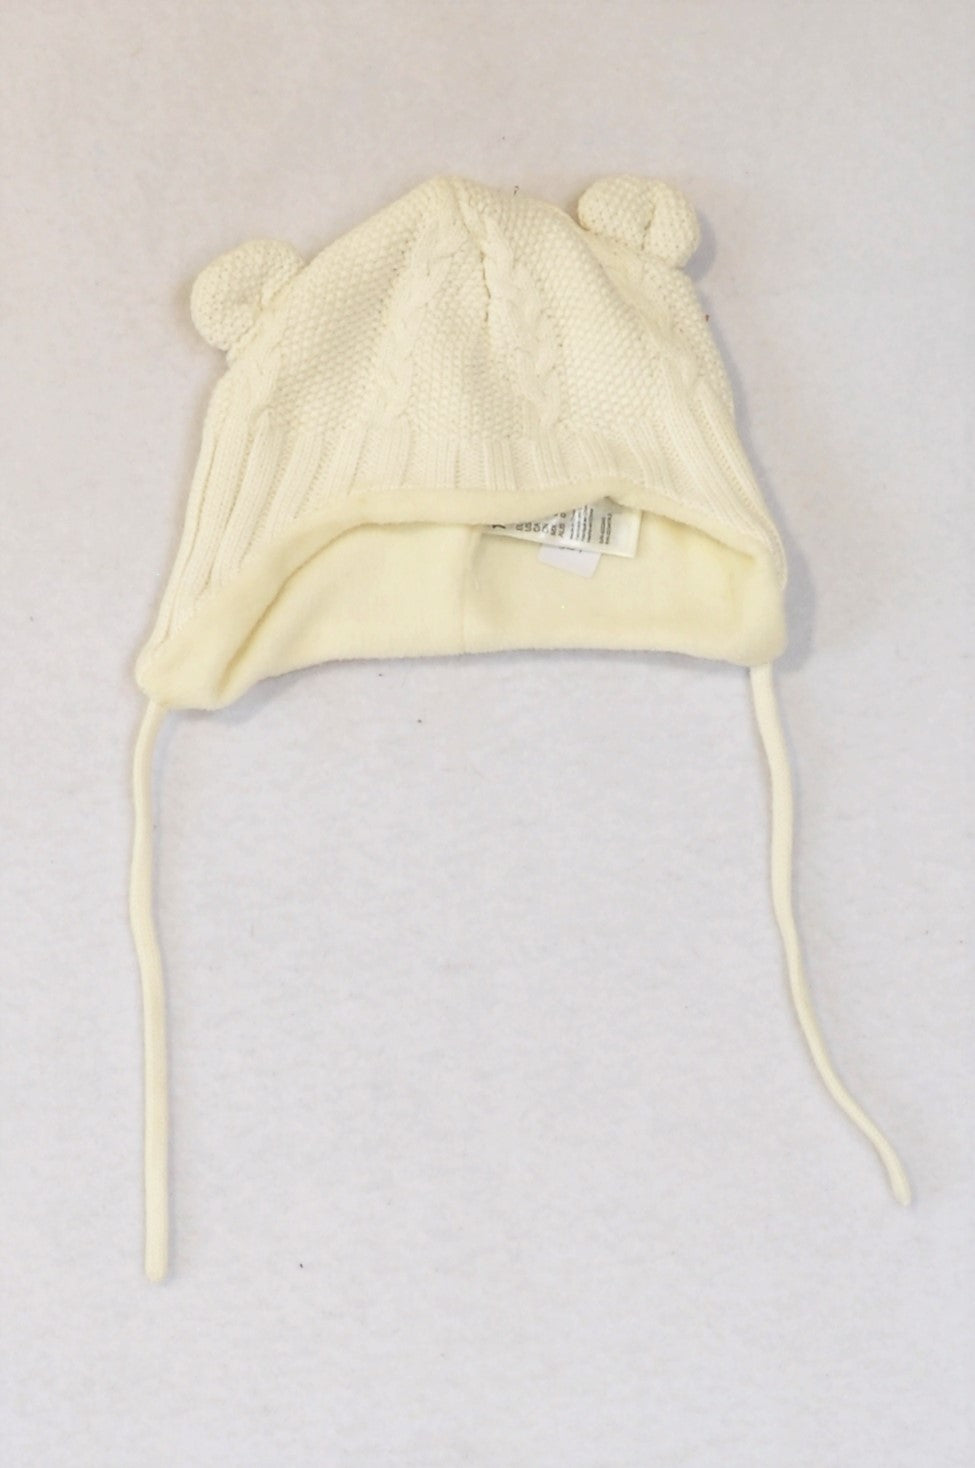 H&M Ivory Cable Knit Fleece Lined Ear Beanie Unisex 3-6 months